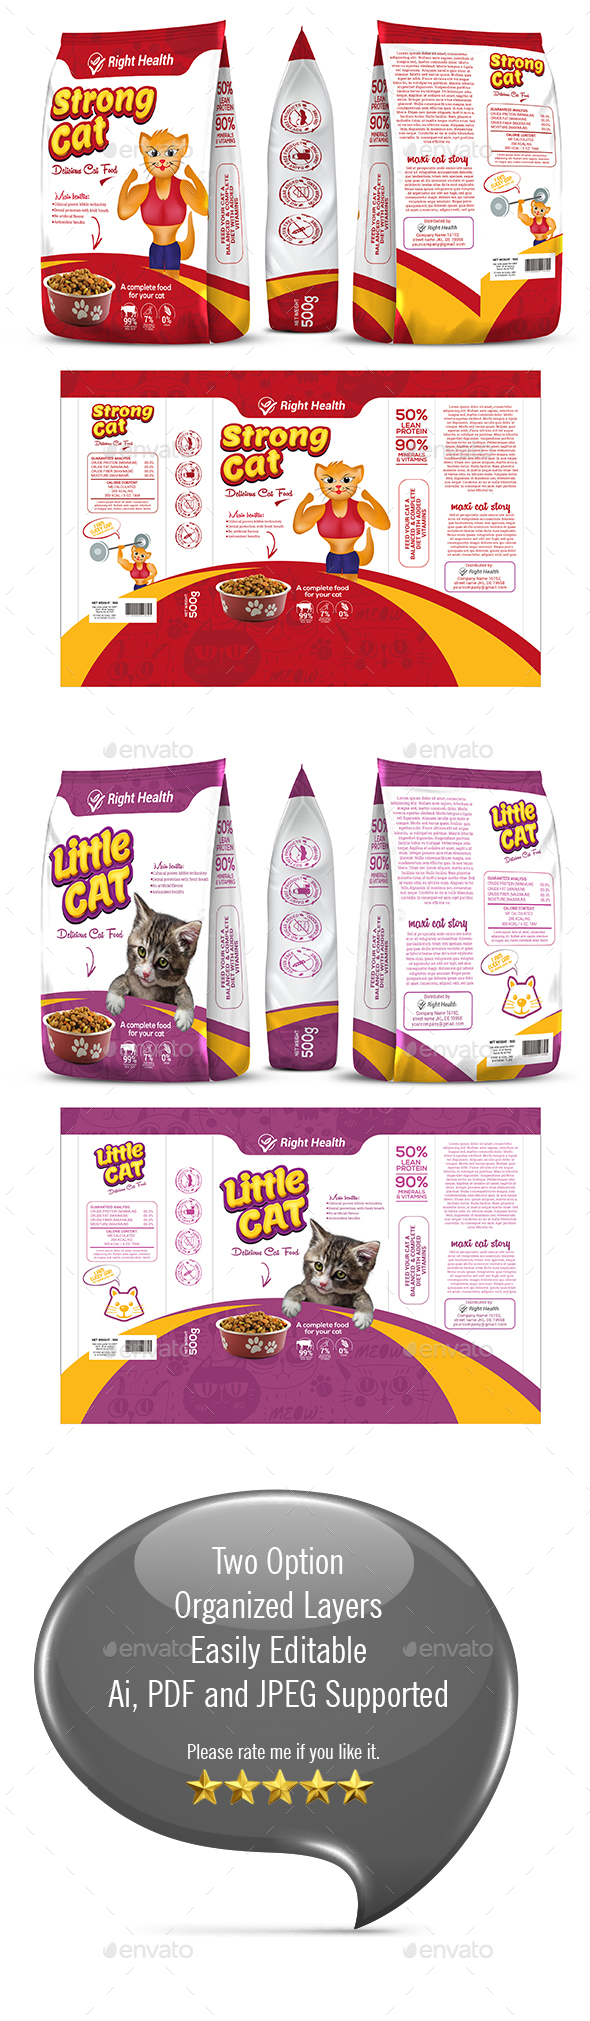 Cat Supplement Packaging Template-05 - Packaging Print Templates